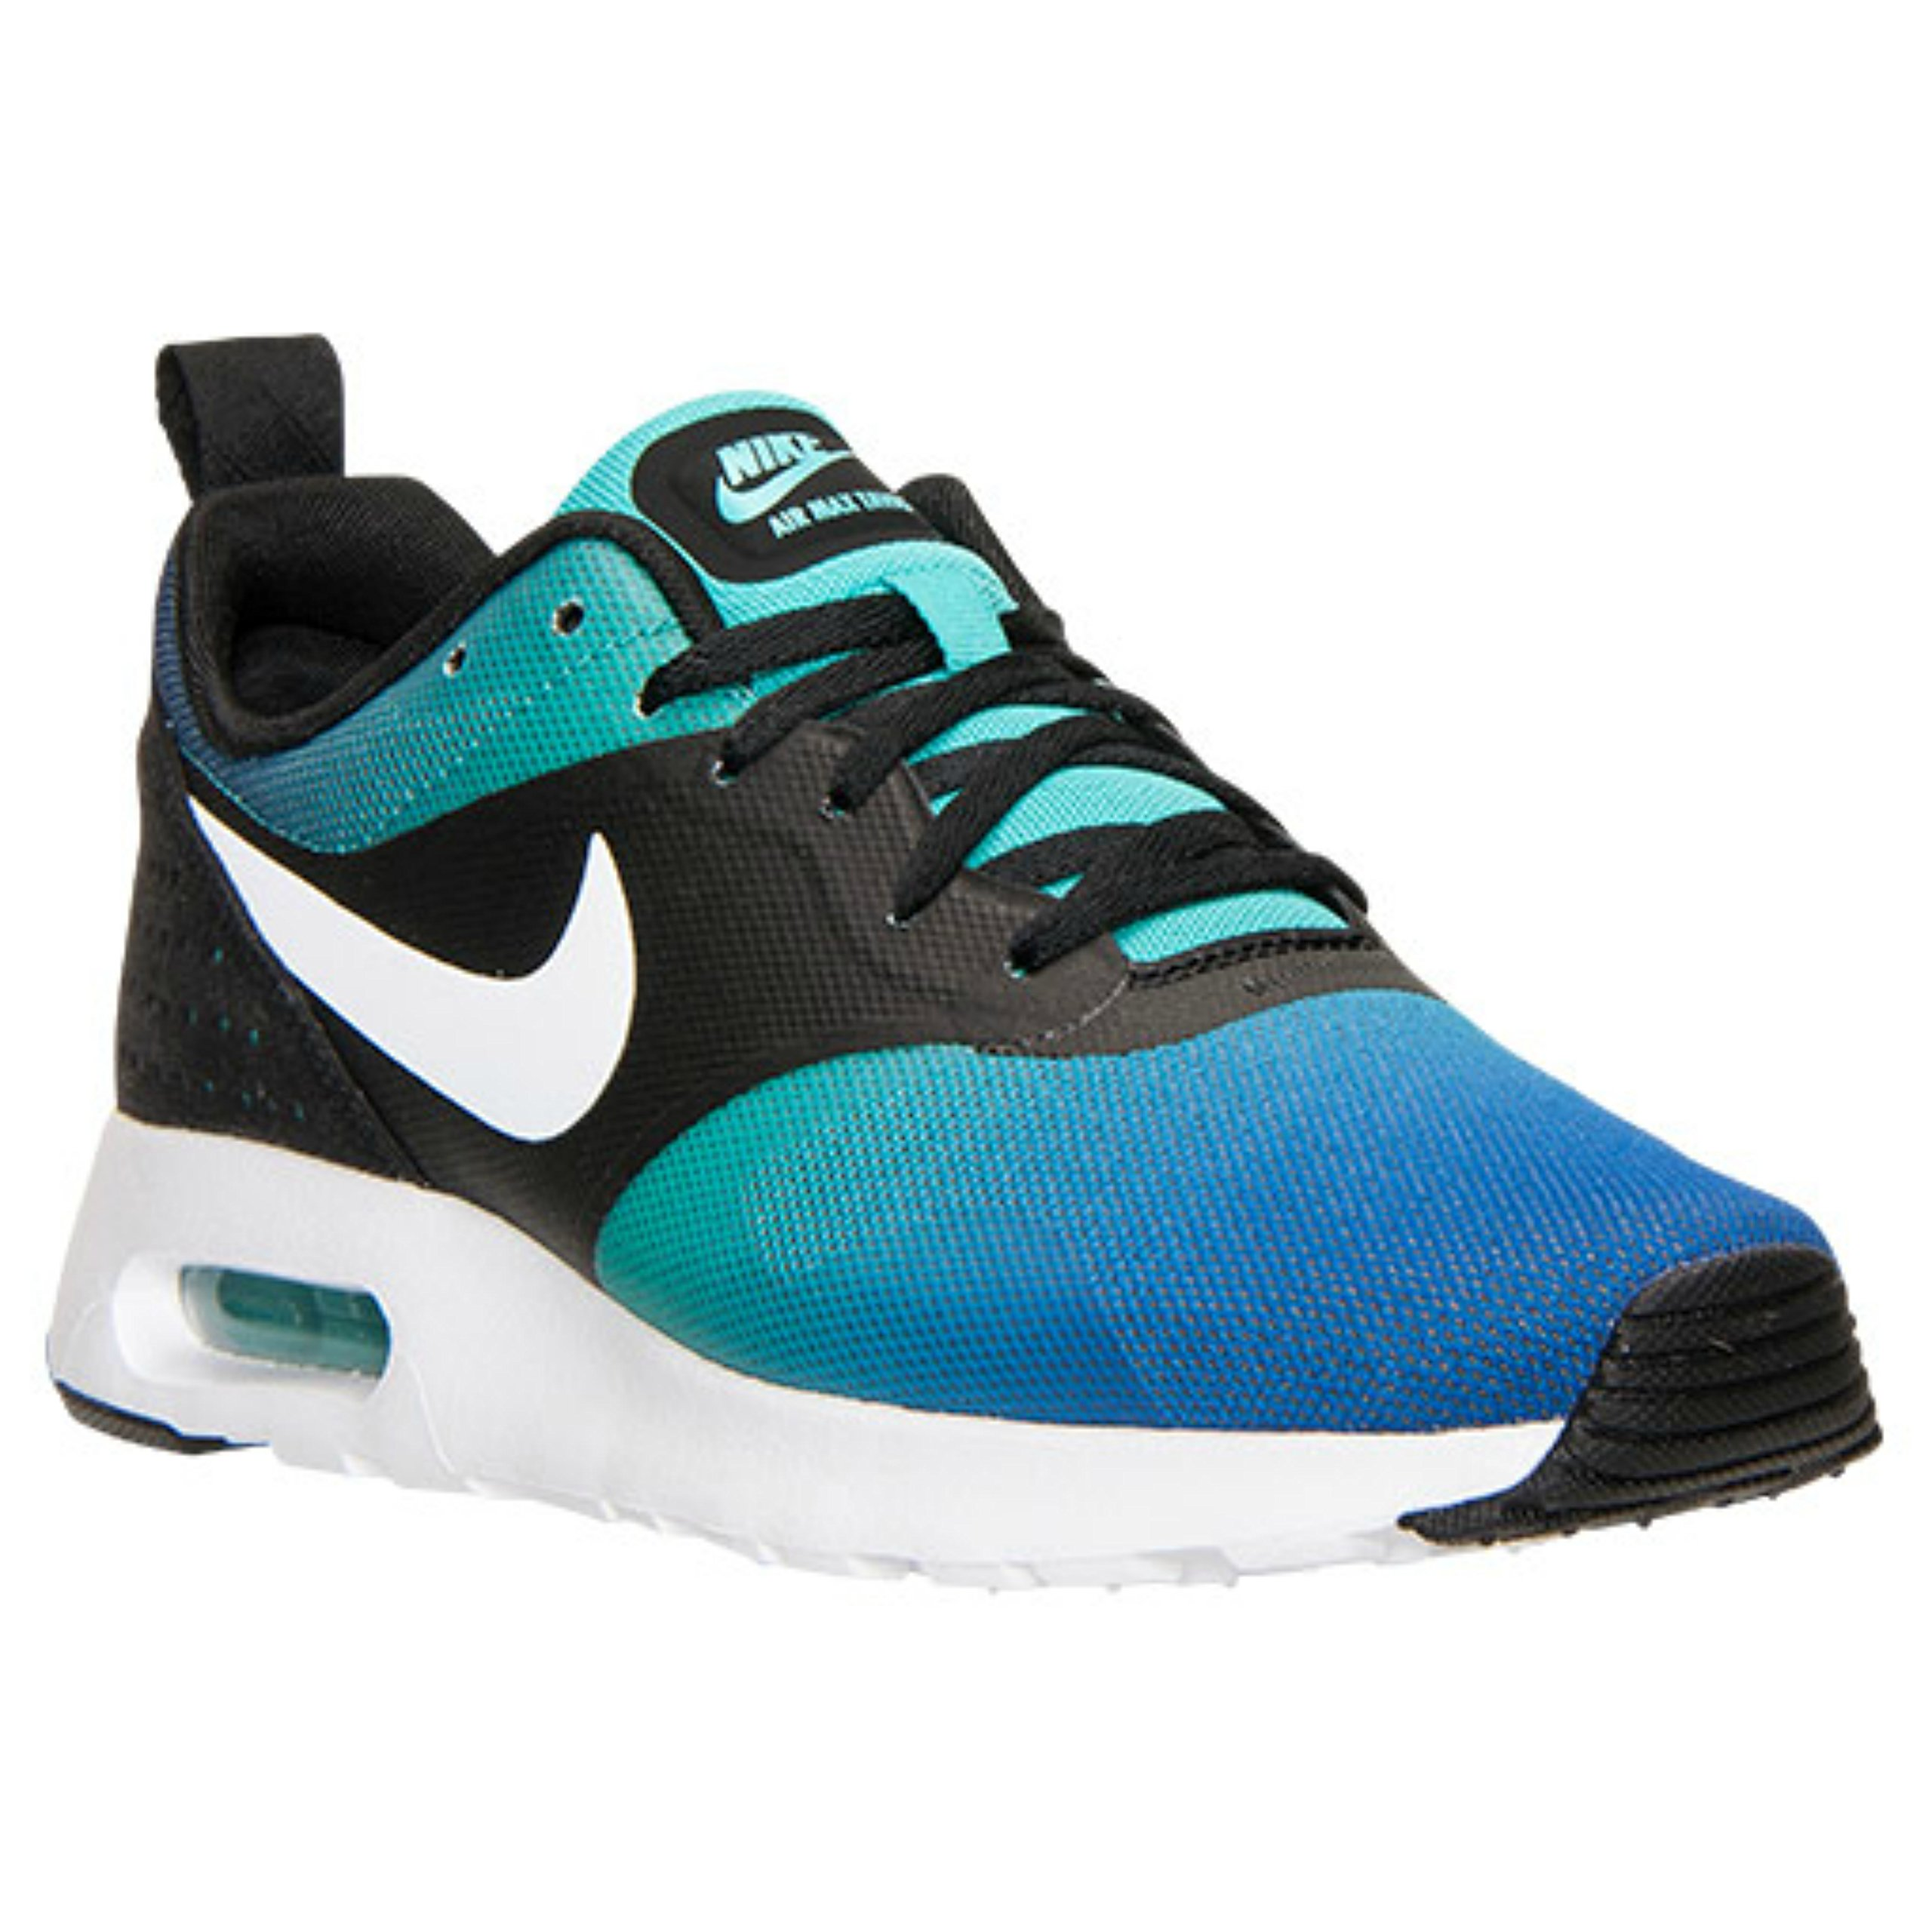 Nike MEN'S Air Max Tavas Print Running Shoes ATHLETIC SNEAKER (12.5)